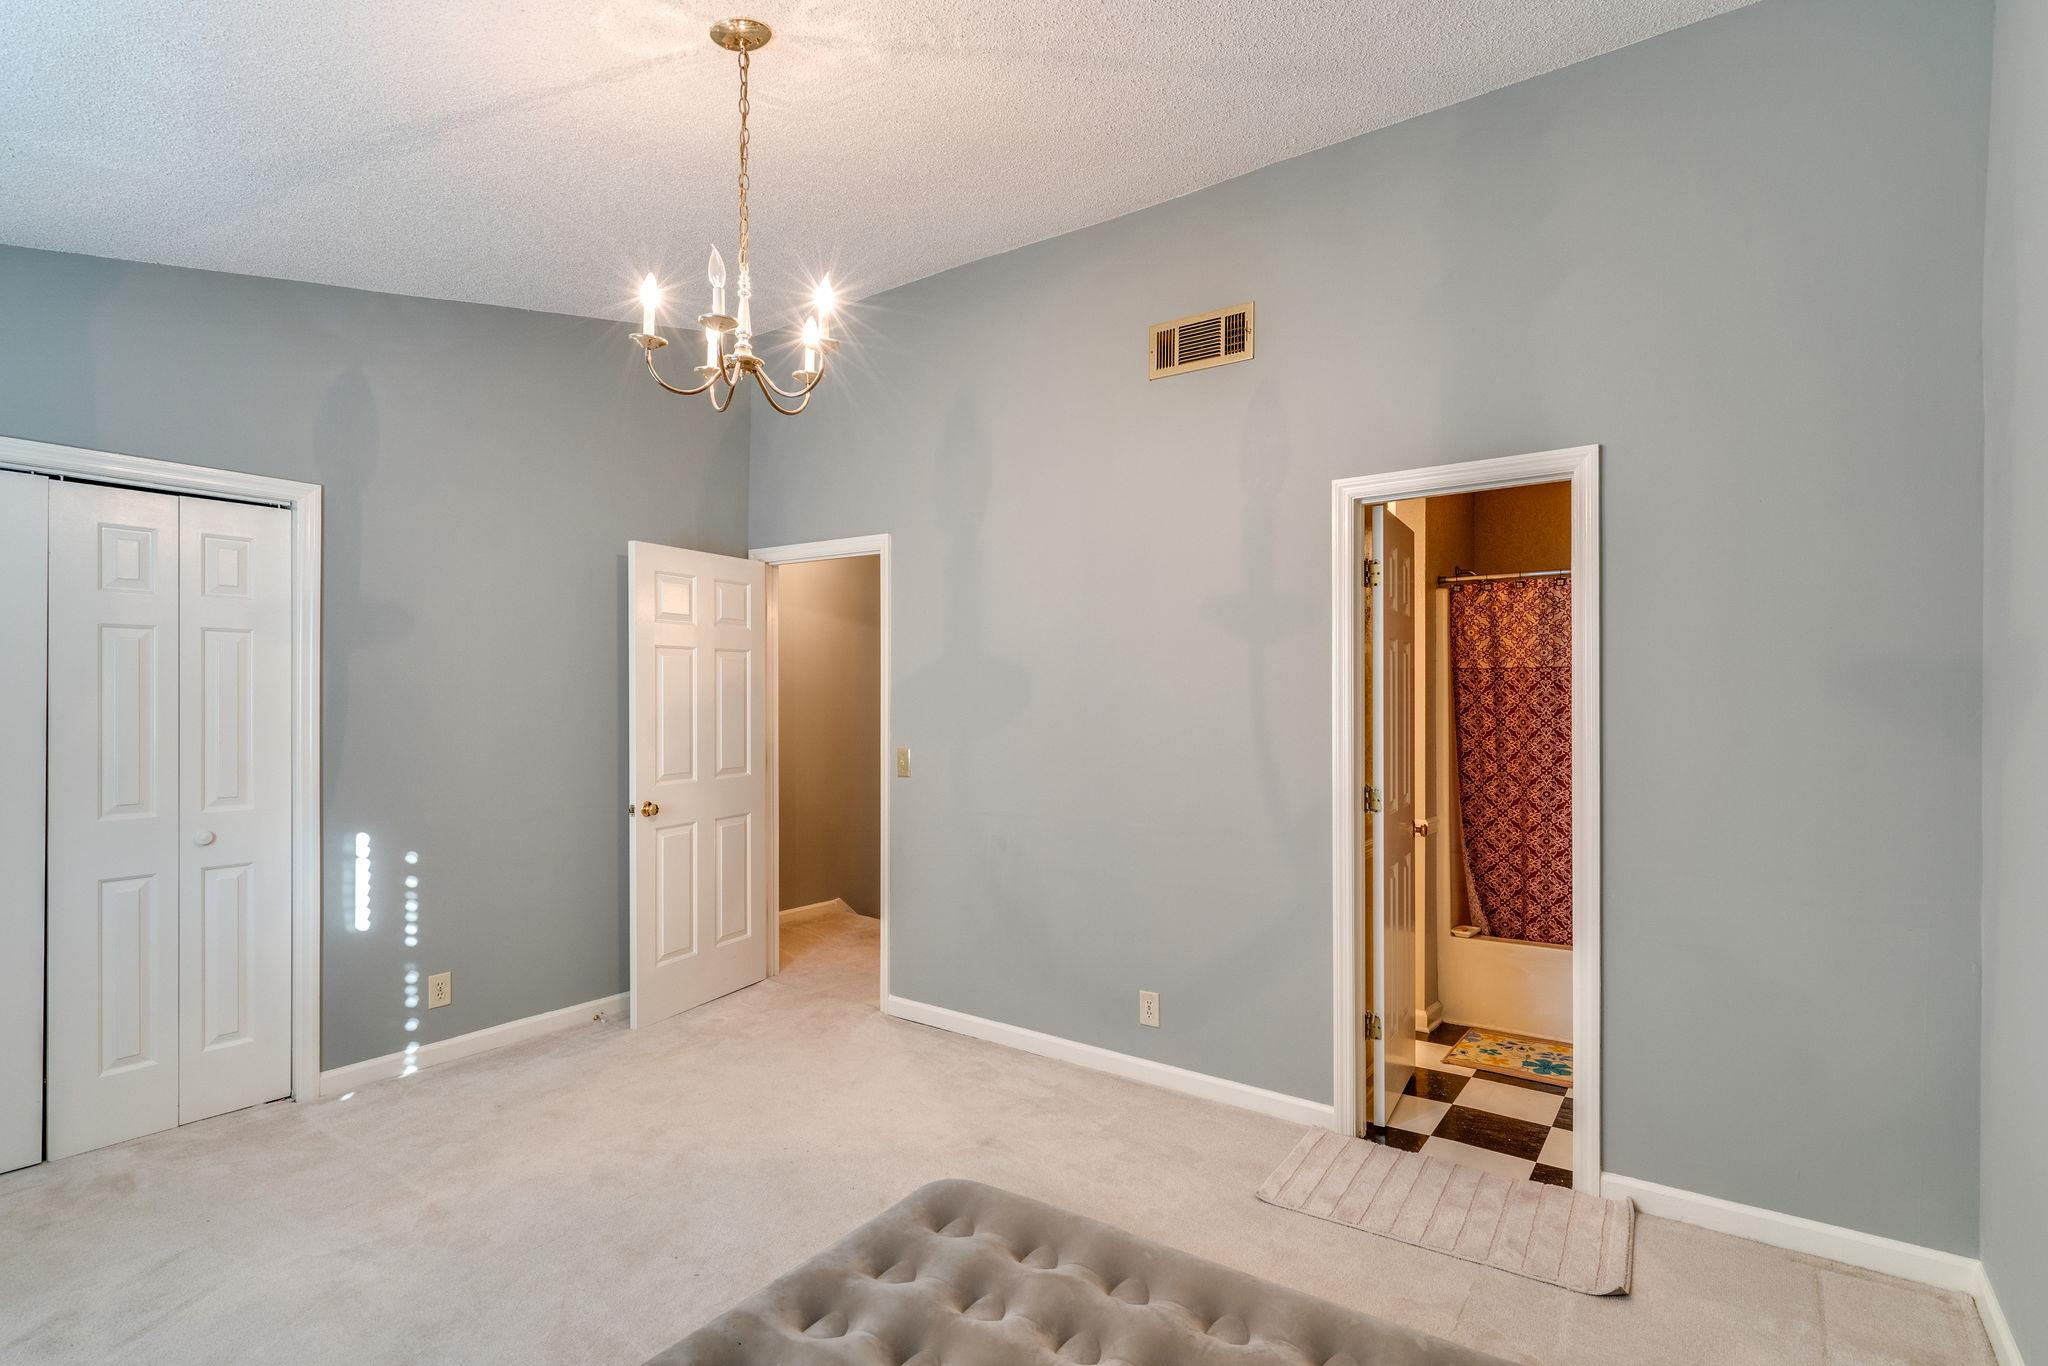 $152,000 - 2Br/2Ba -  for Sale in Hickory Glade, Antioch